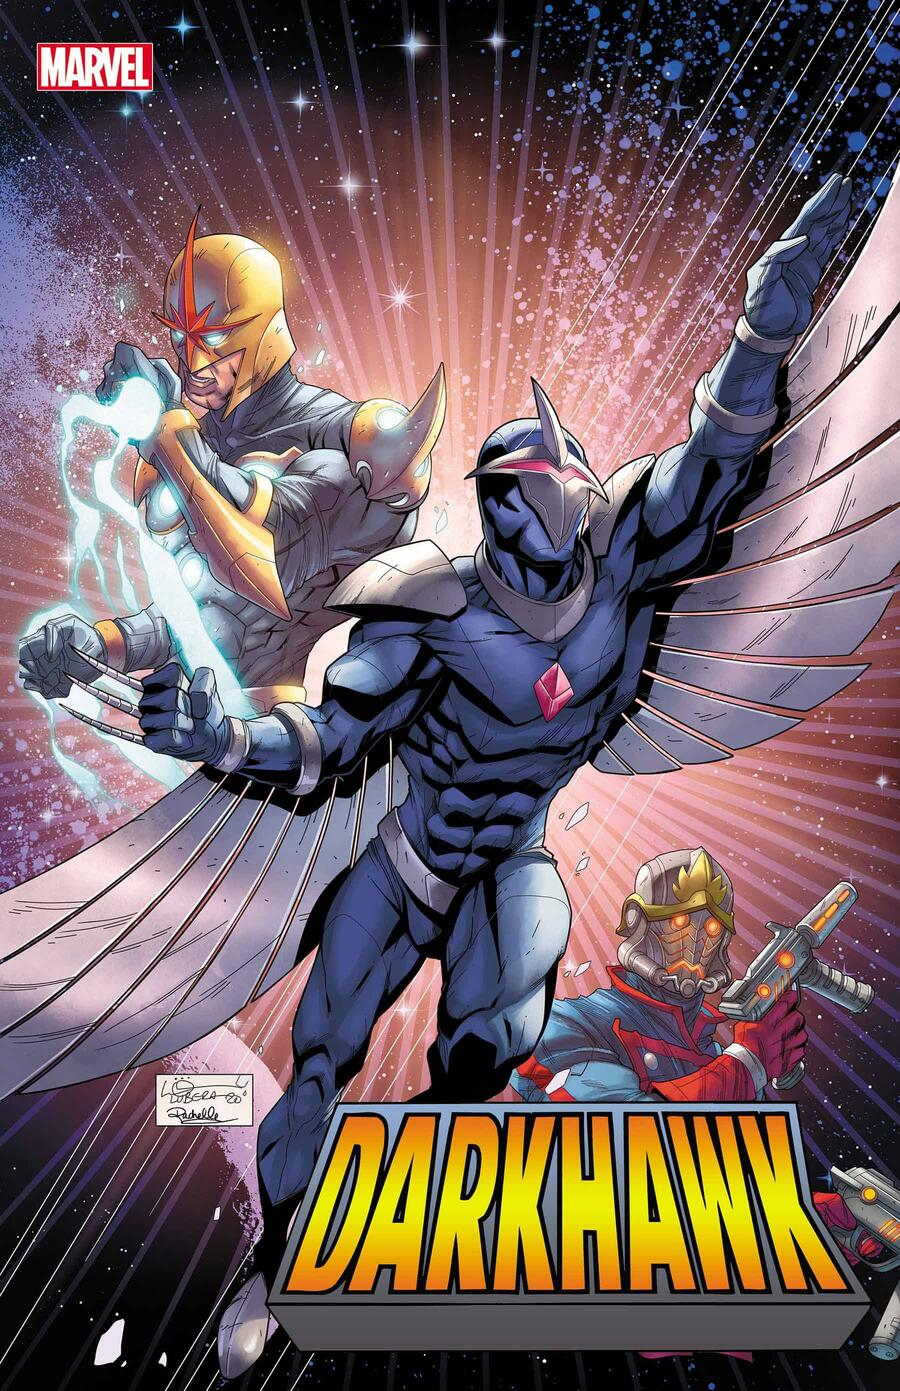 Darkhawk variant cover